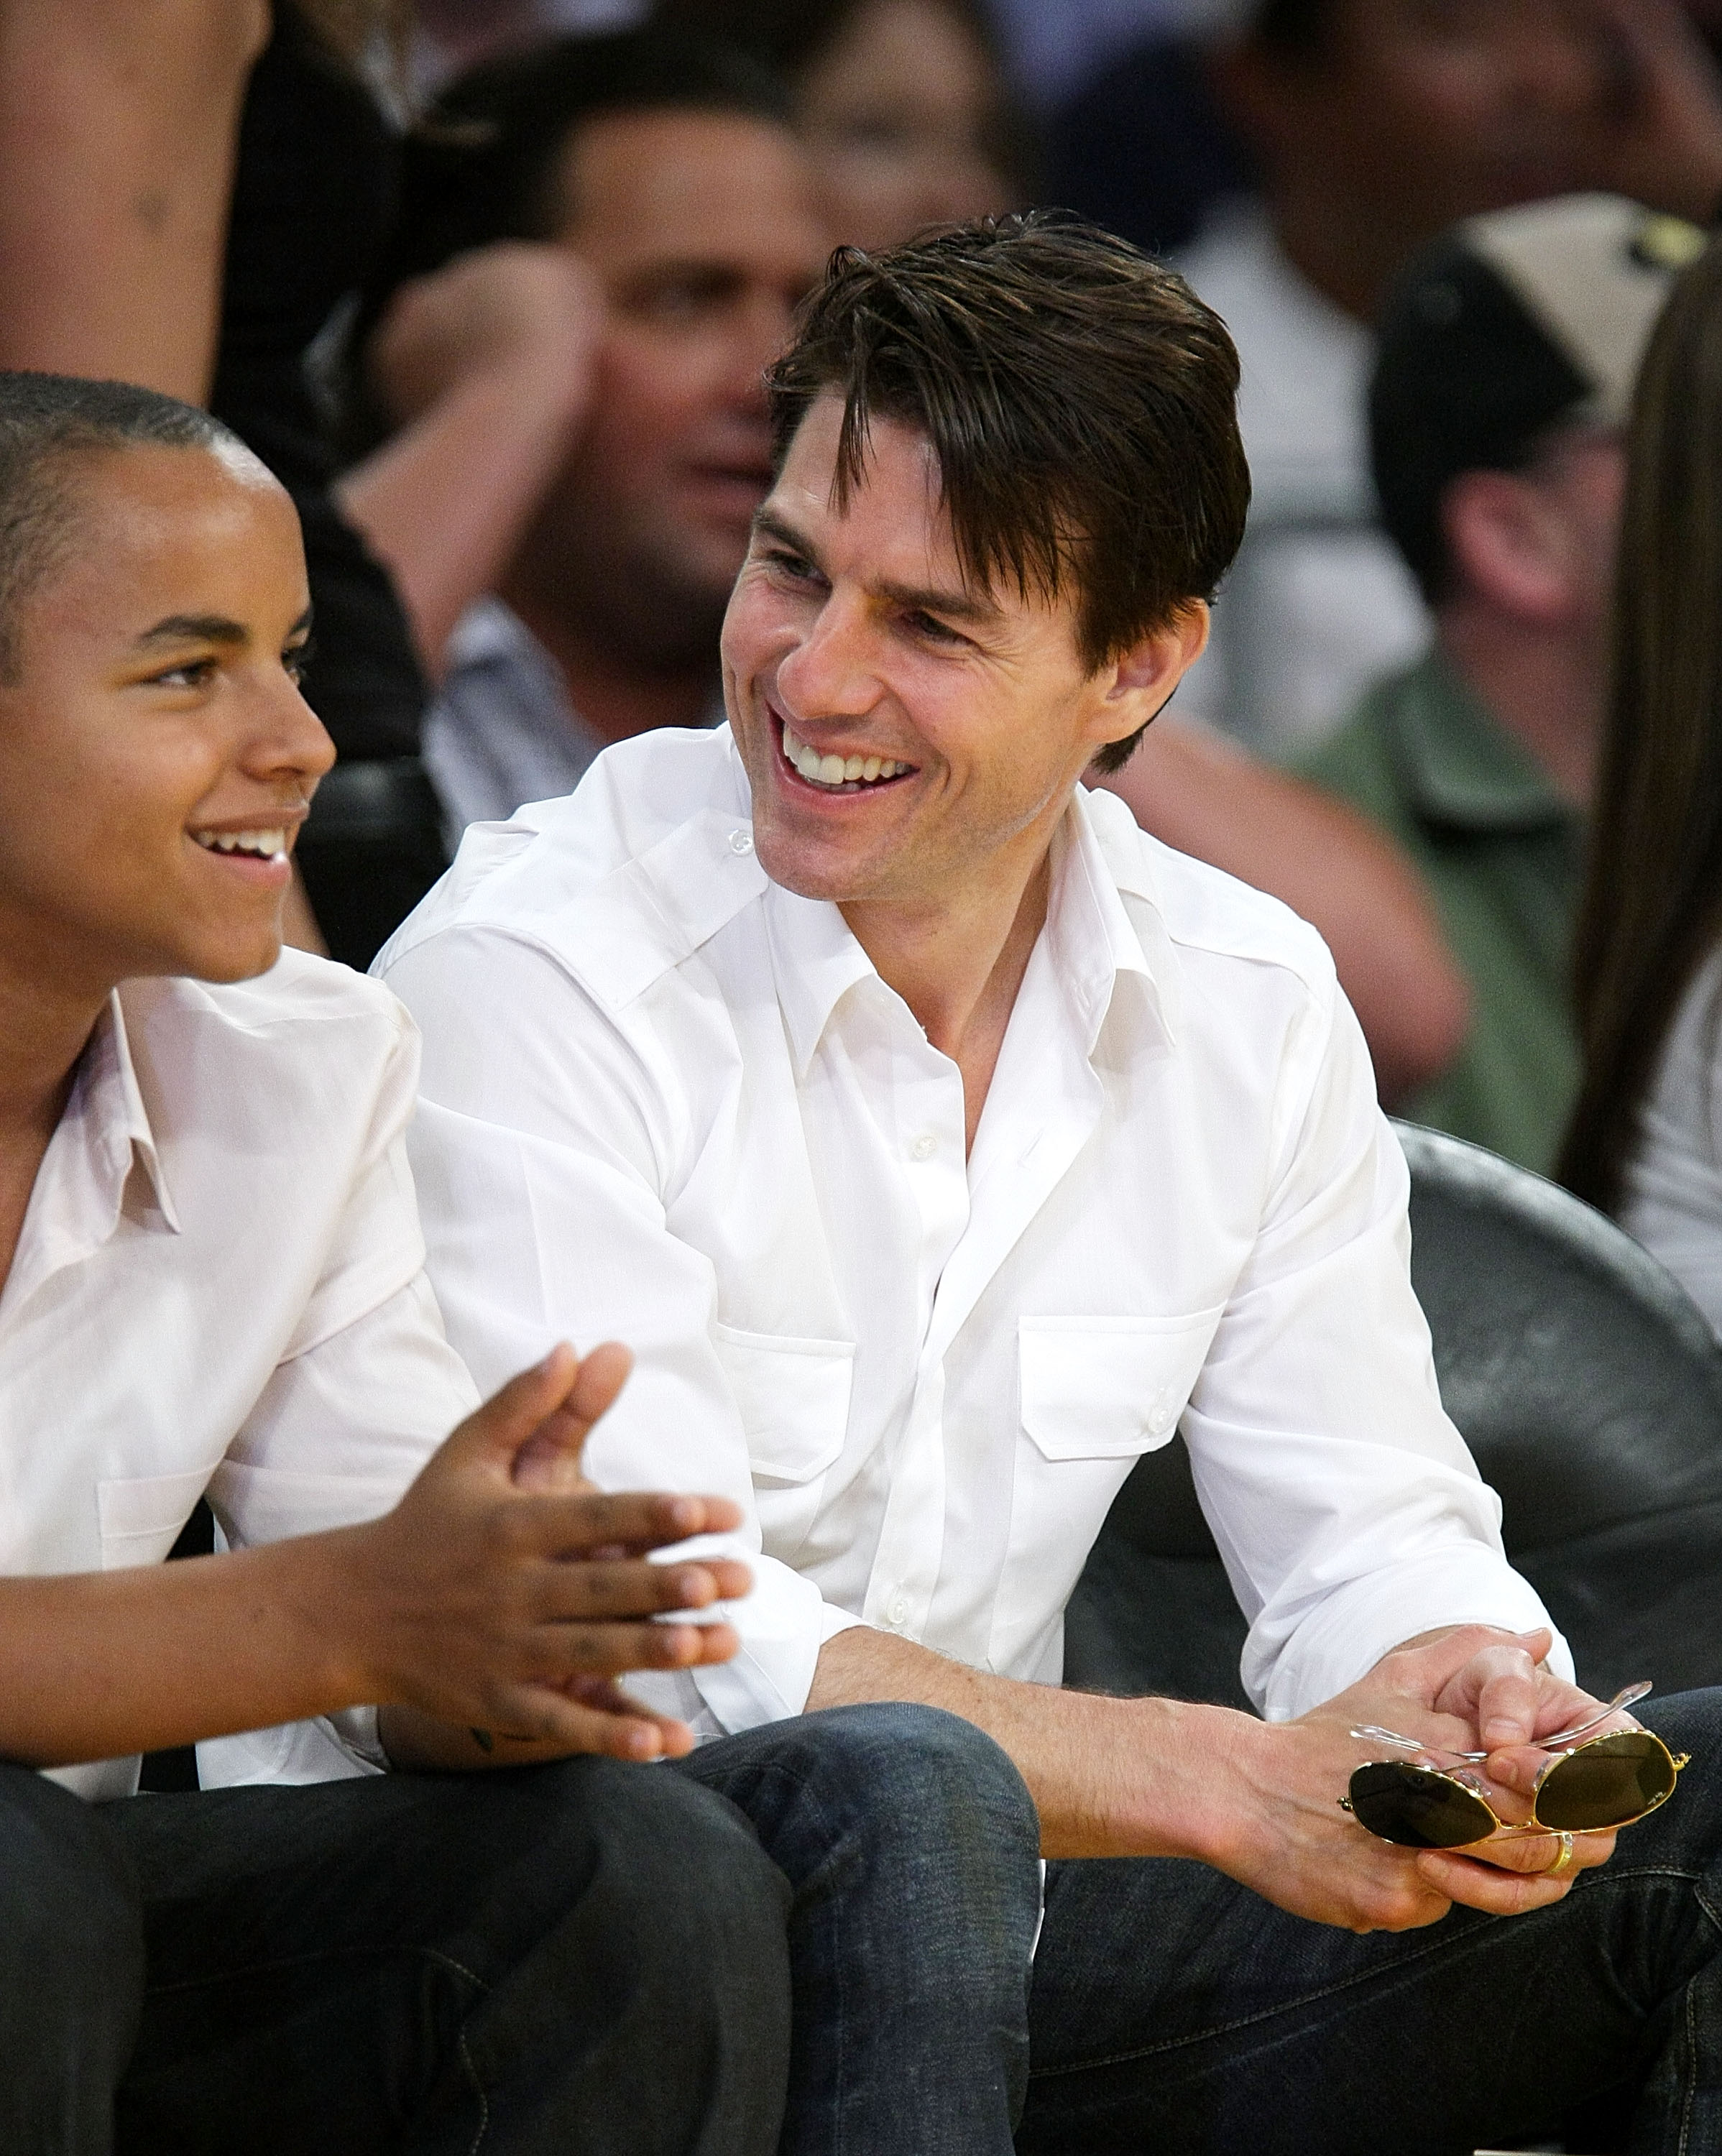 Tom Cruise's Son Connor Makes Rare Appearance Alongside His Dad